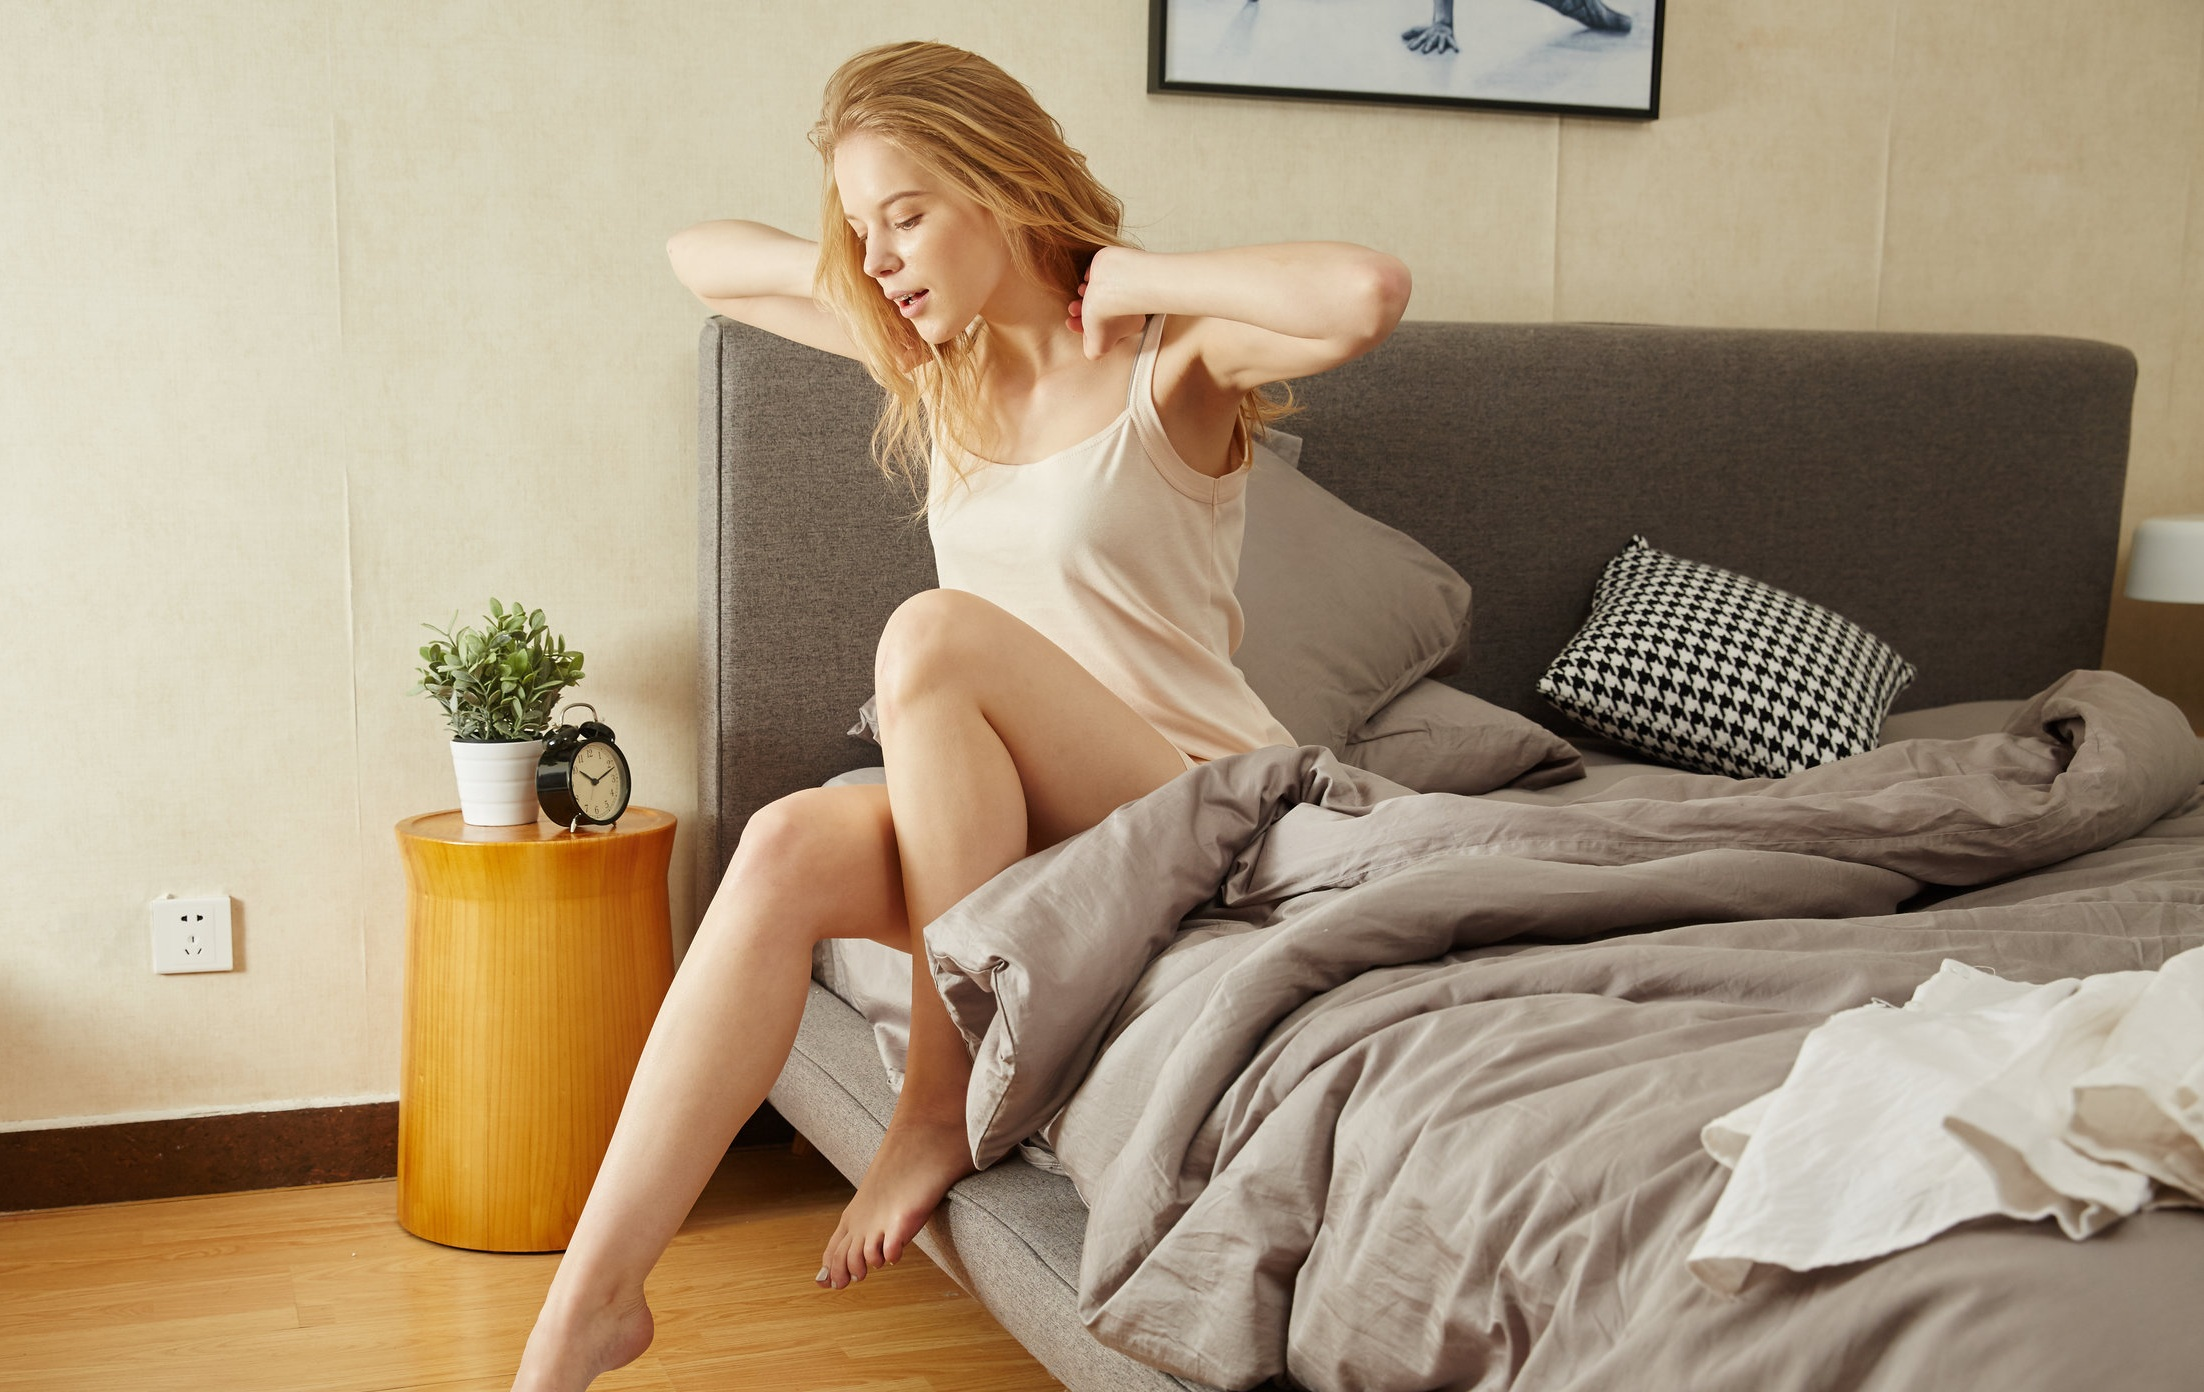 woman getting up